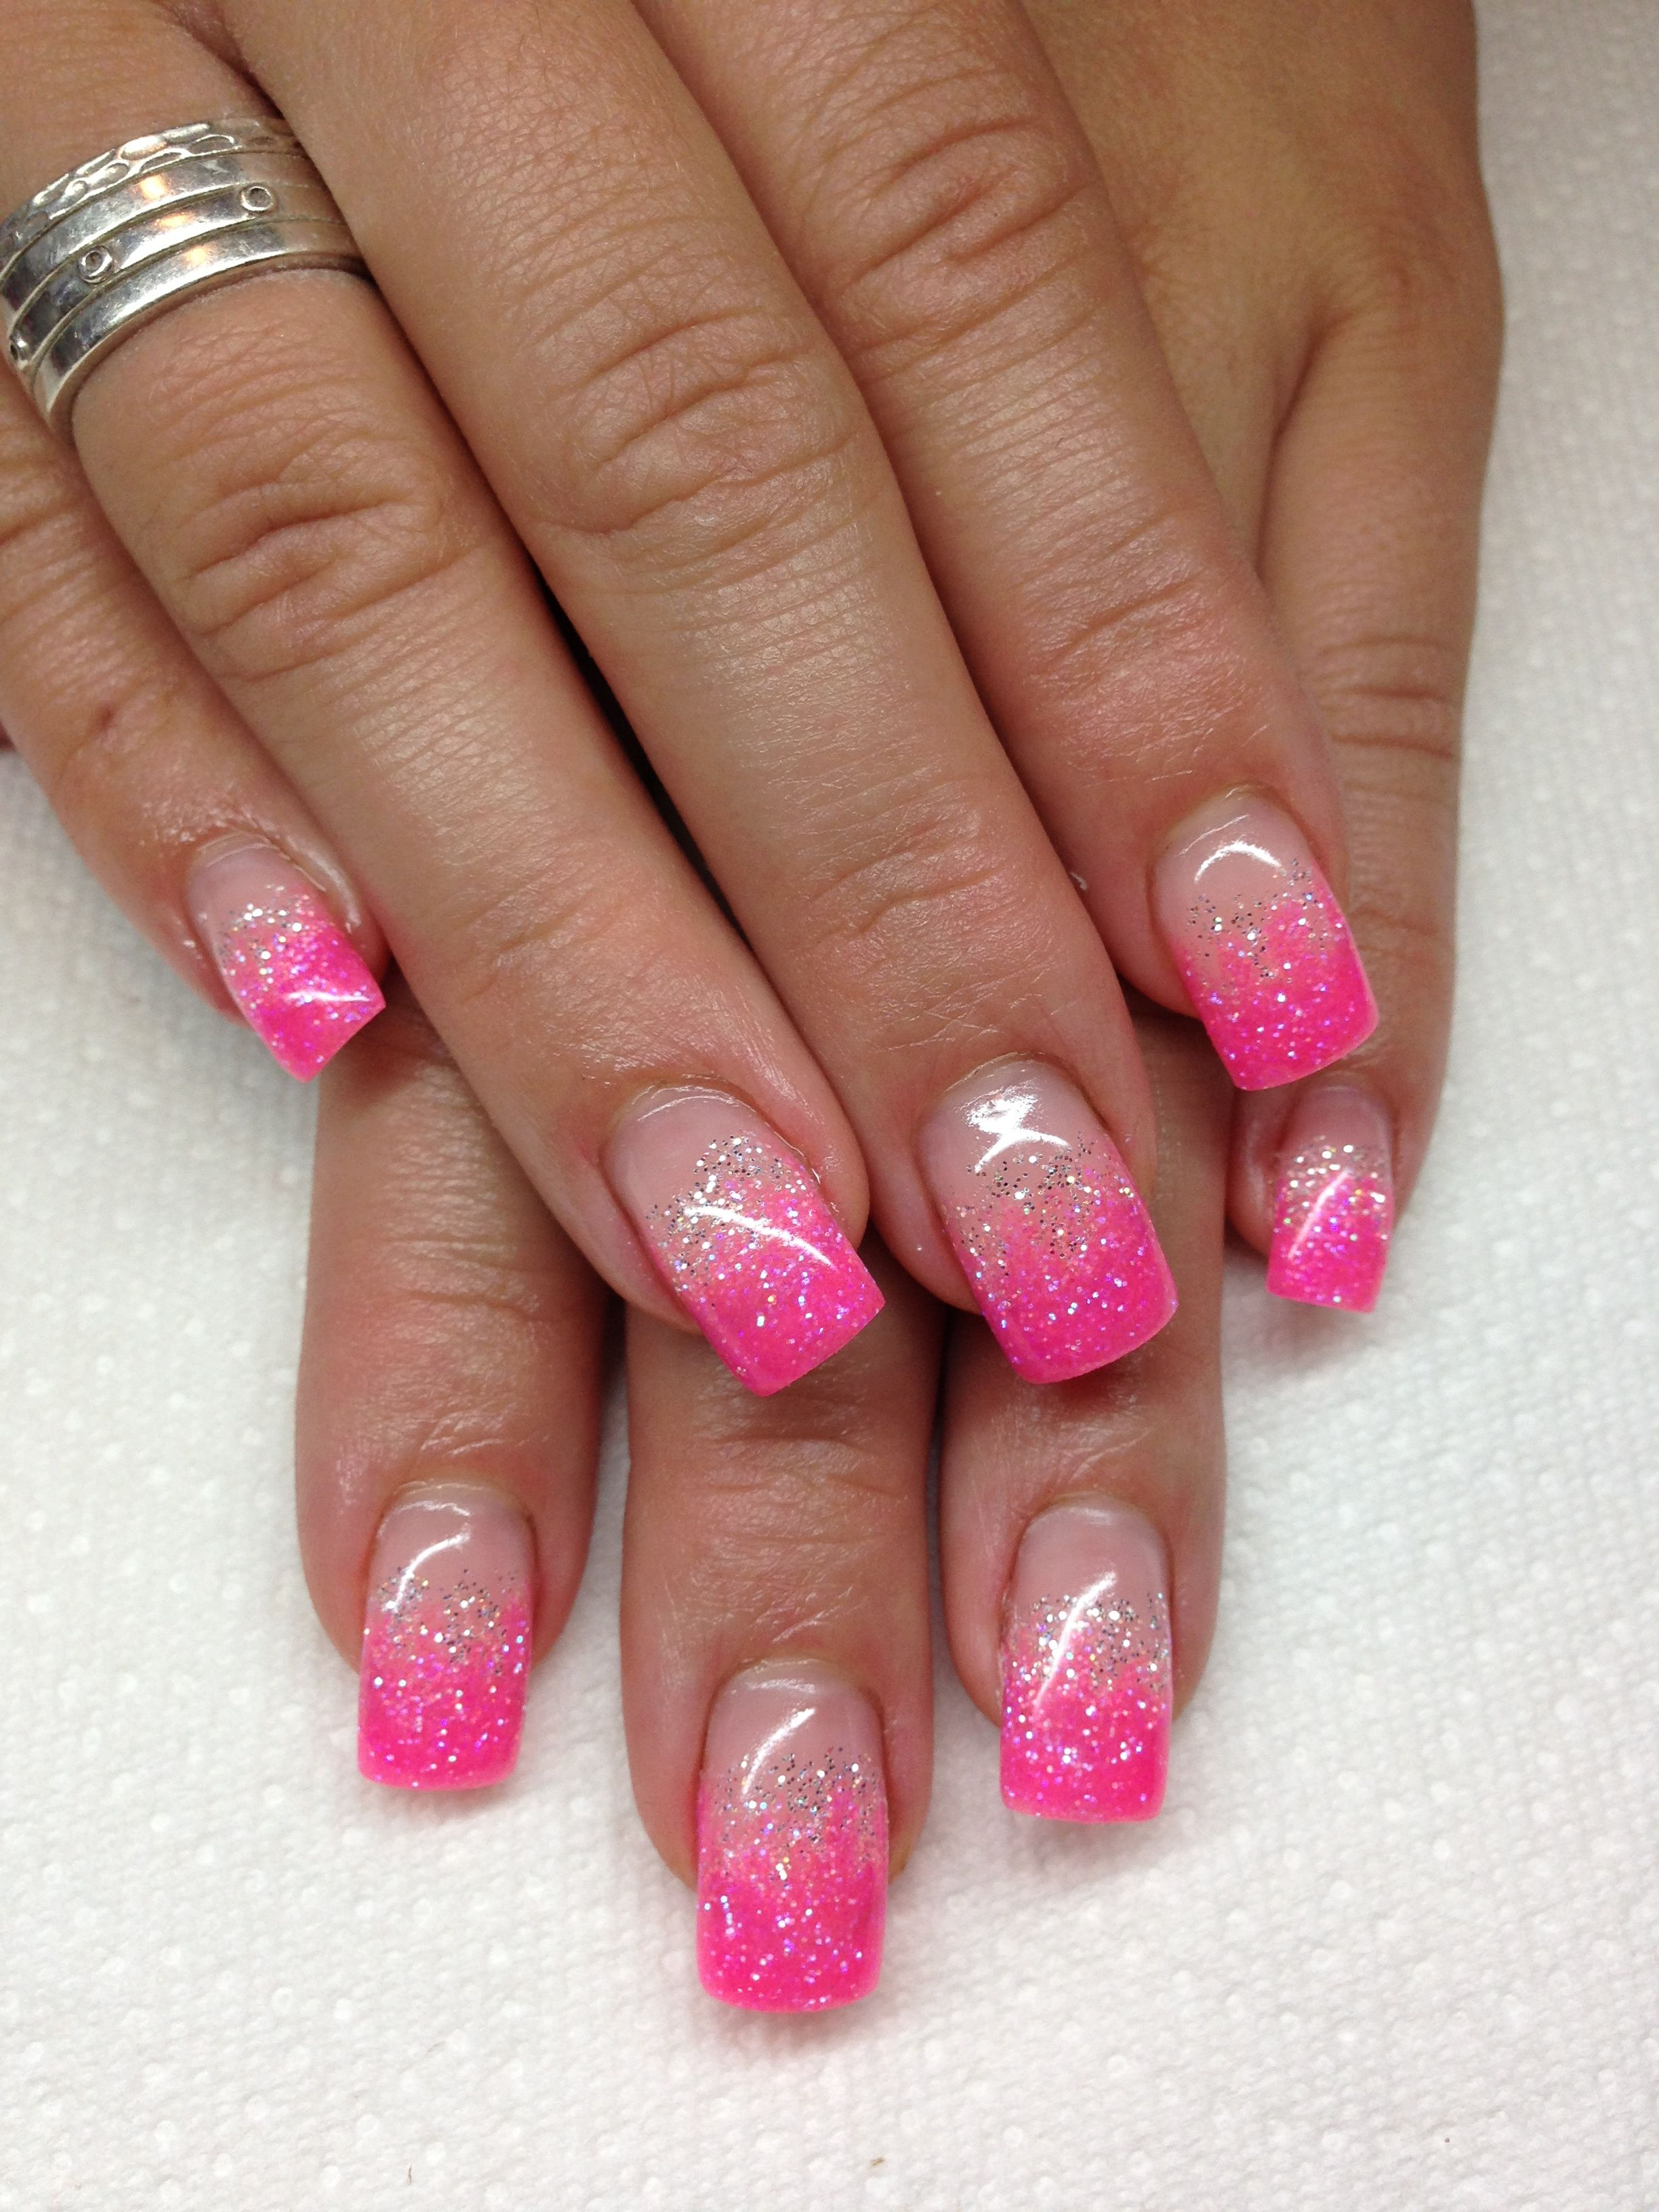 Glitter Nail Trends: I Love The Pink And Glitter Tips